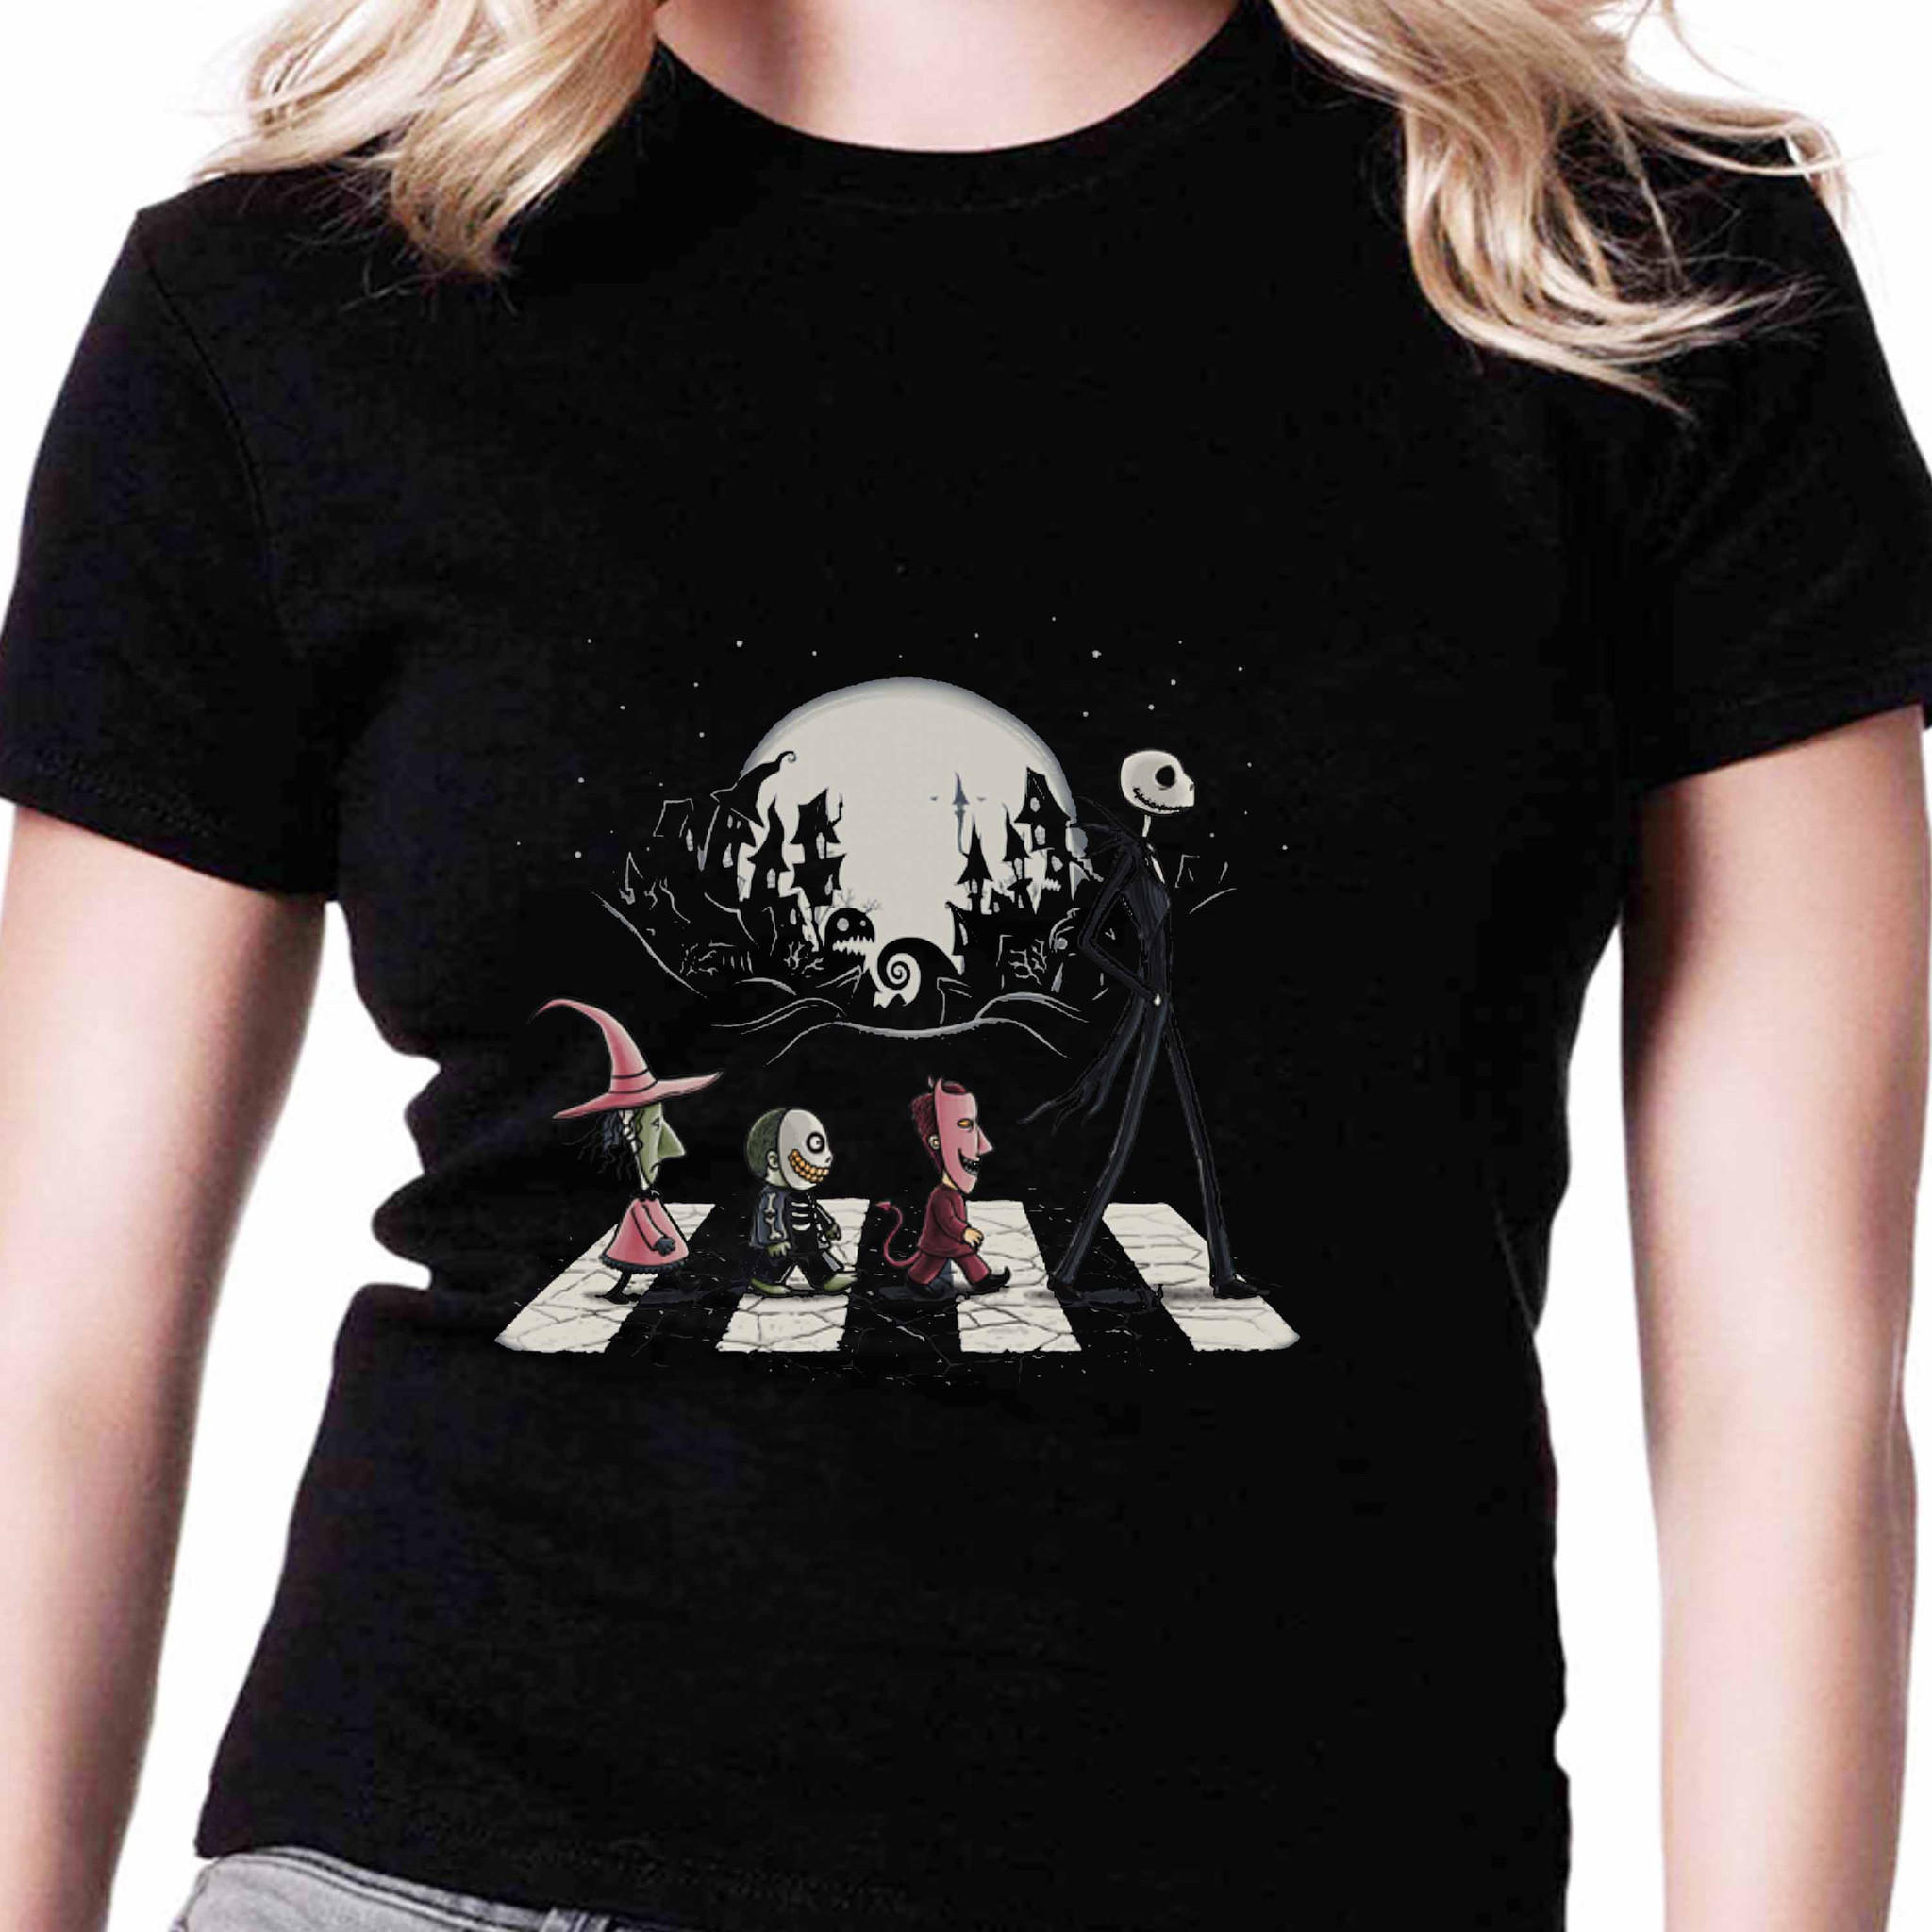 Lock Shock And Barrel Nightmare Before from shoptshirt.net